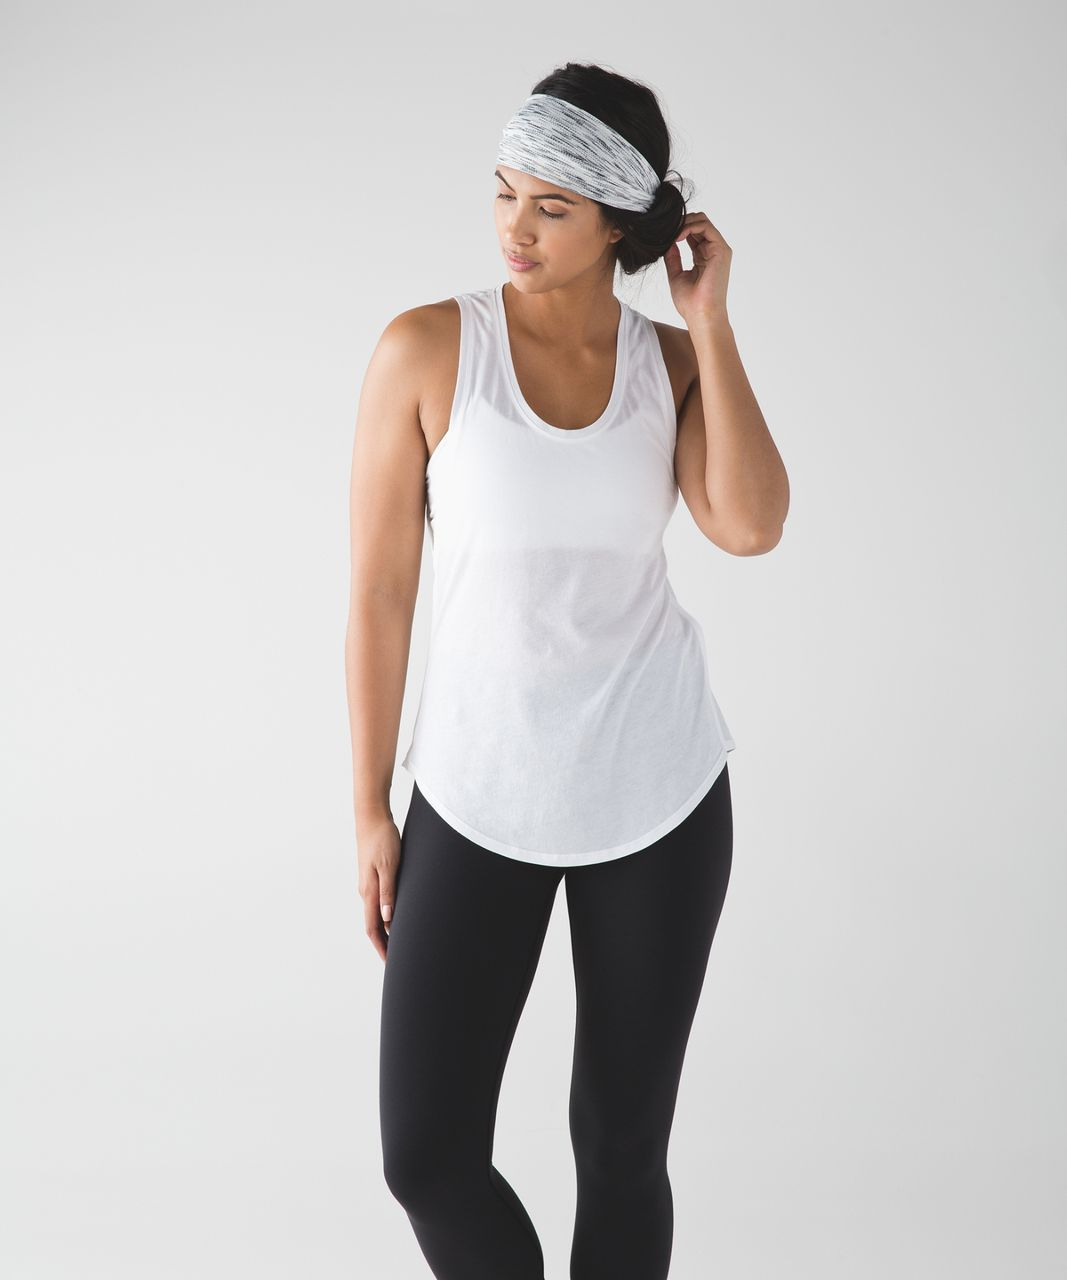 Lululemon Fringe Fighter Headband - Wee Are From Space Ice Grey Alpine White / Tiger Space Dye Black White